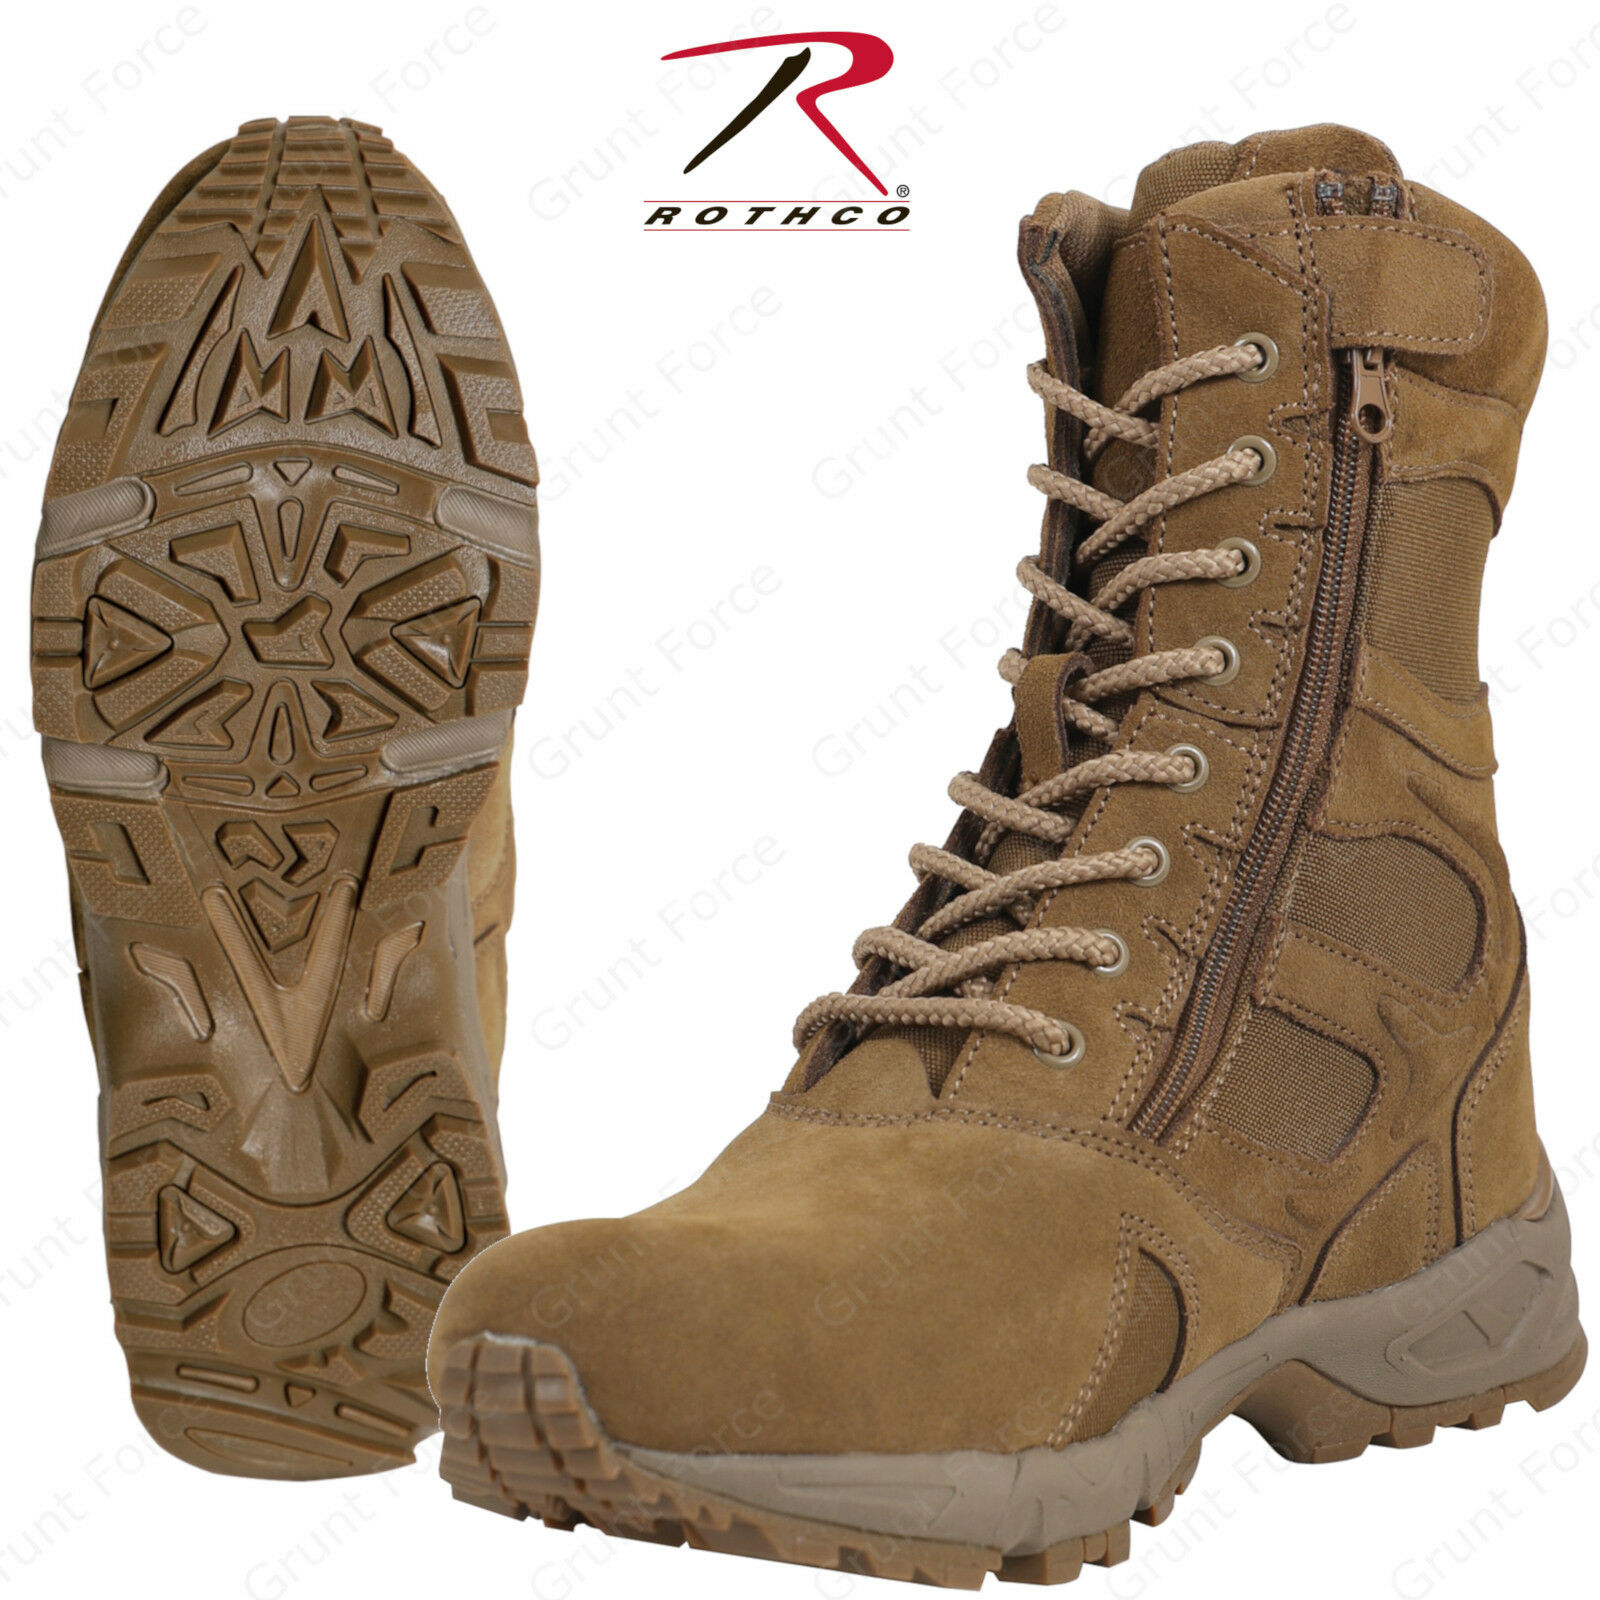 redhco Forced Entry 8  Deployment Boots w  Side Zipper - AR 670-1 Coyote Brown